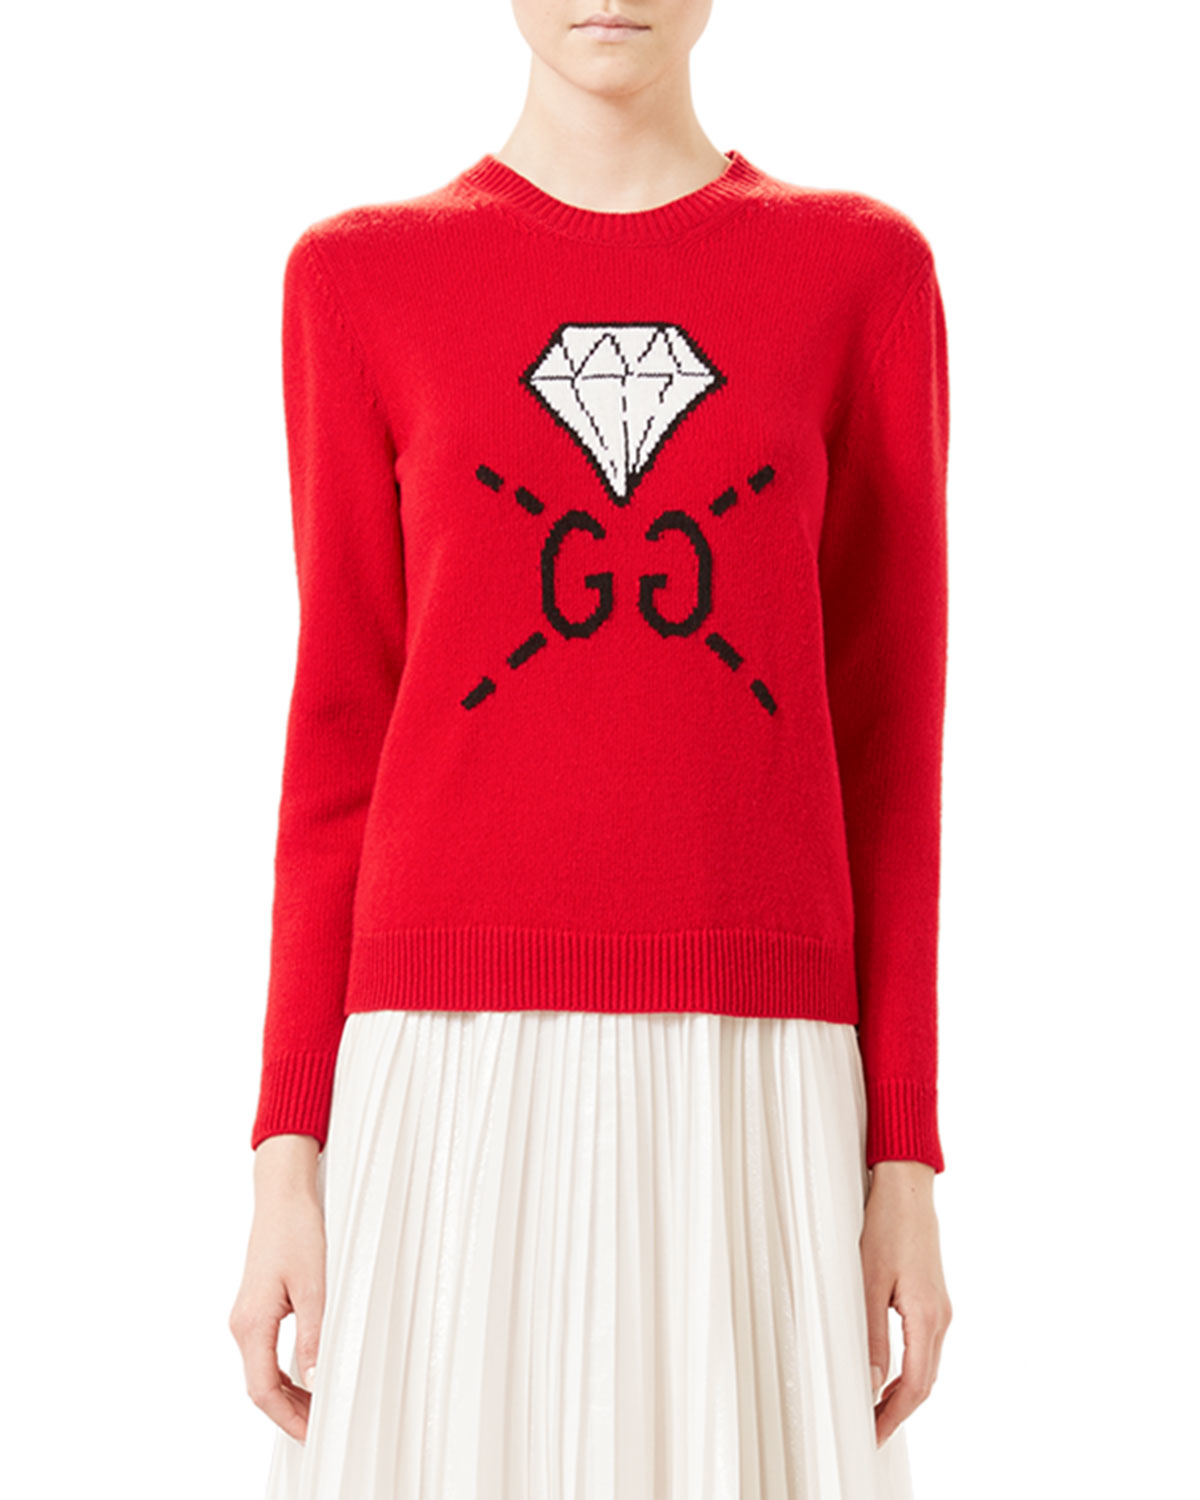 4ebe40dd21d Lyst - Gucci Ghost Gg Diamond Knit Top in Red